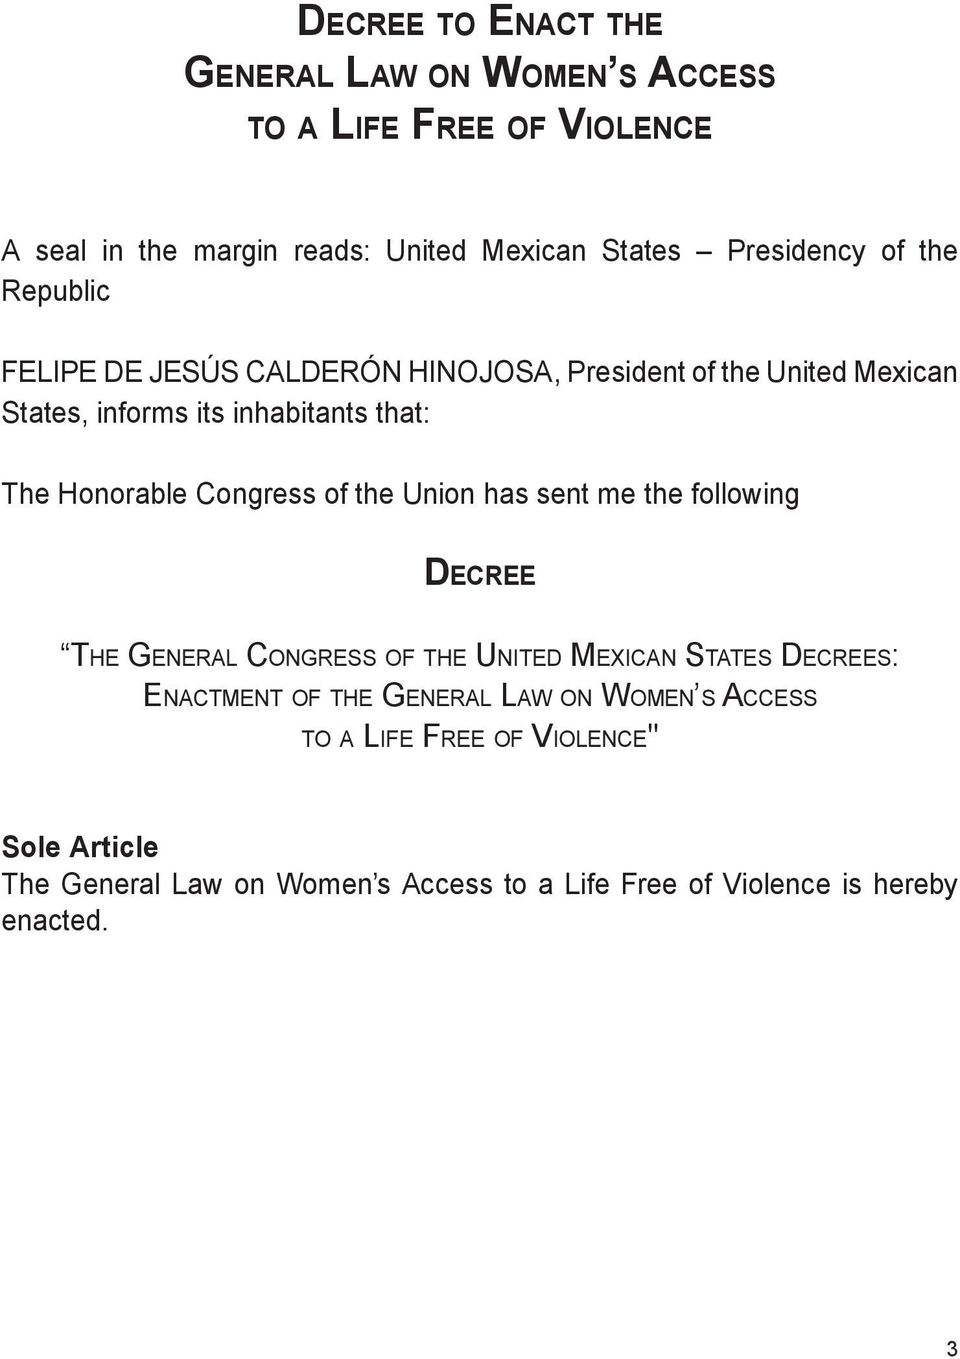 Congress of the Union has sent me the following Decree The General Congress of the United Mexican States Decrees: Enactment of the General